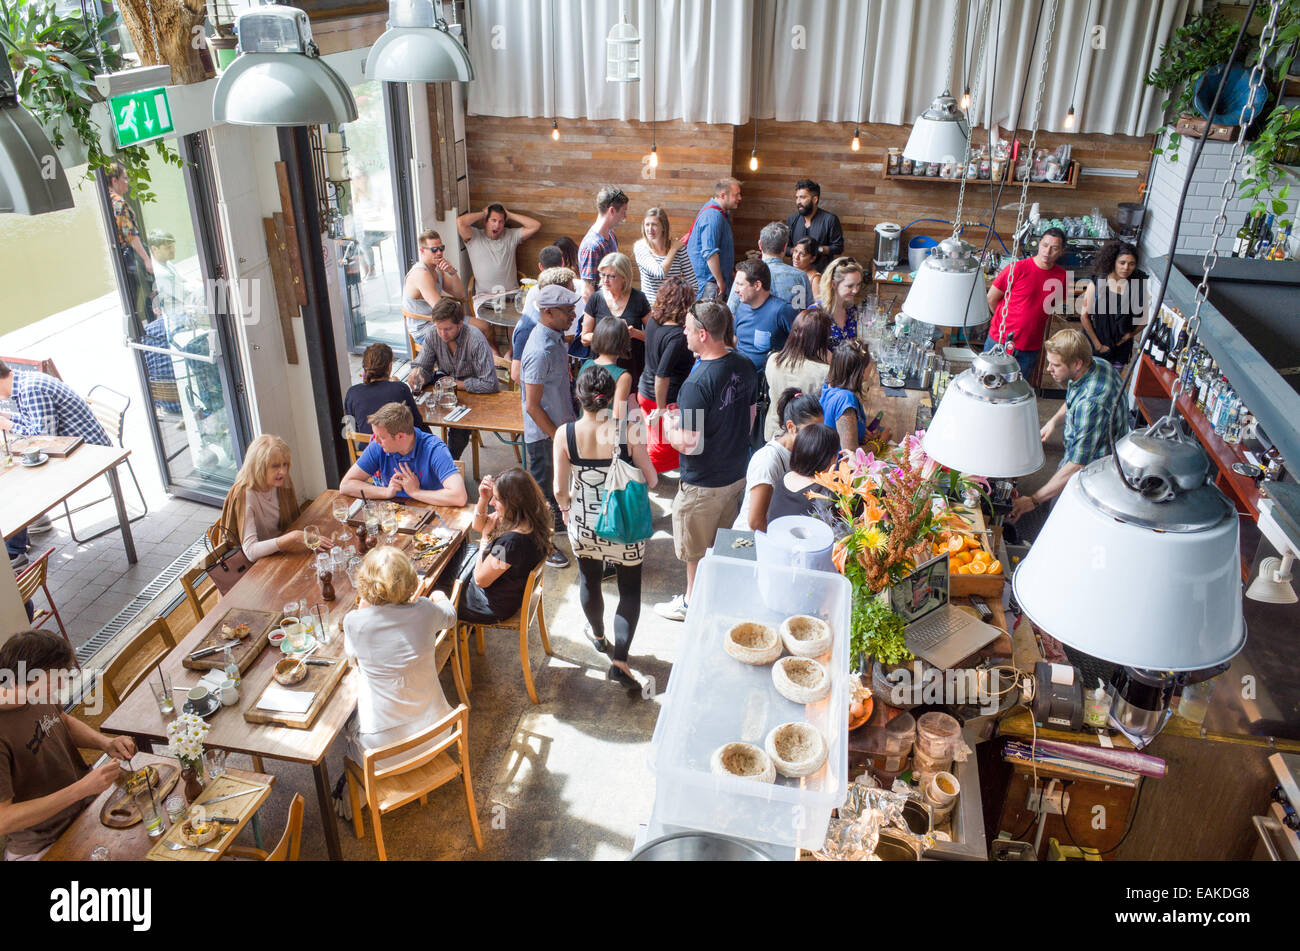 Ribeira cafe and restaurant on the towpath of the Regent's Canal, Shoreditch, Hackney, London, England, UK - Stock Image